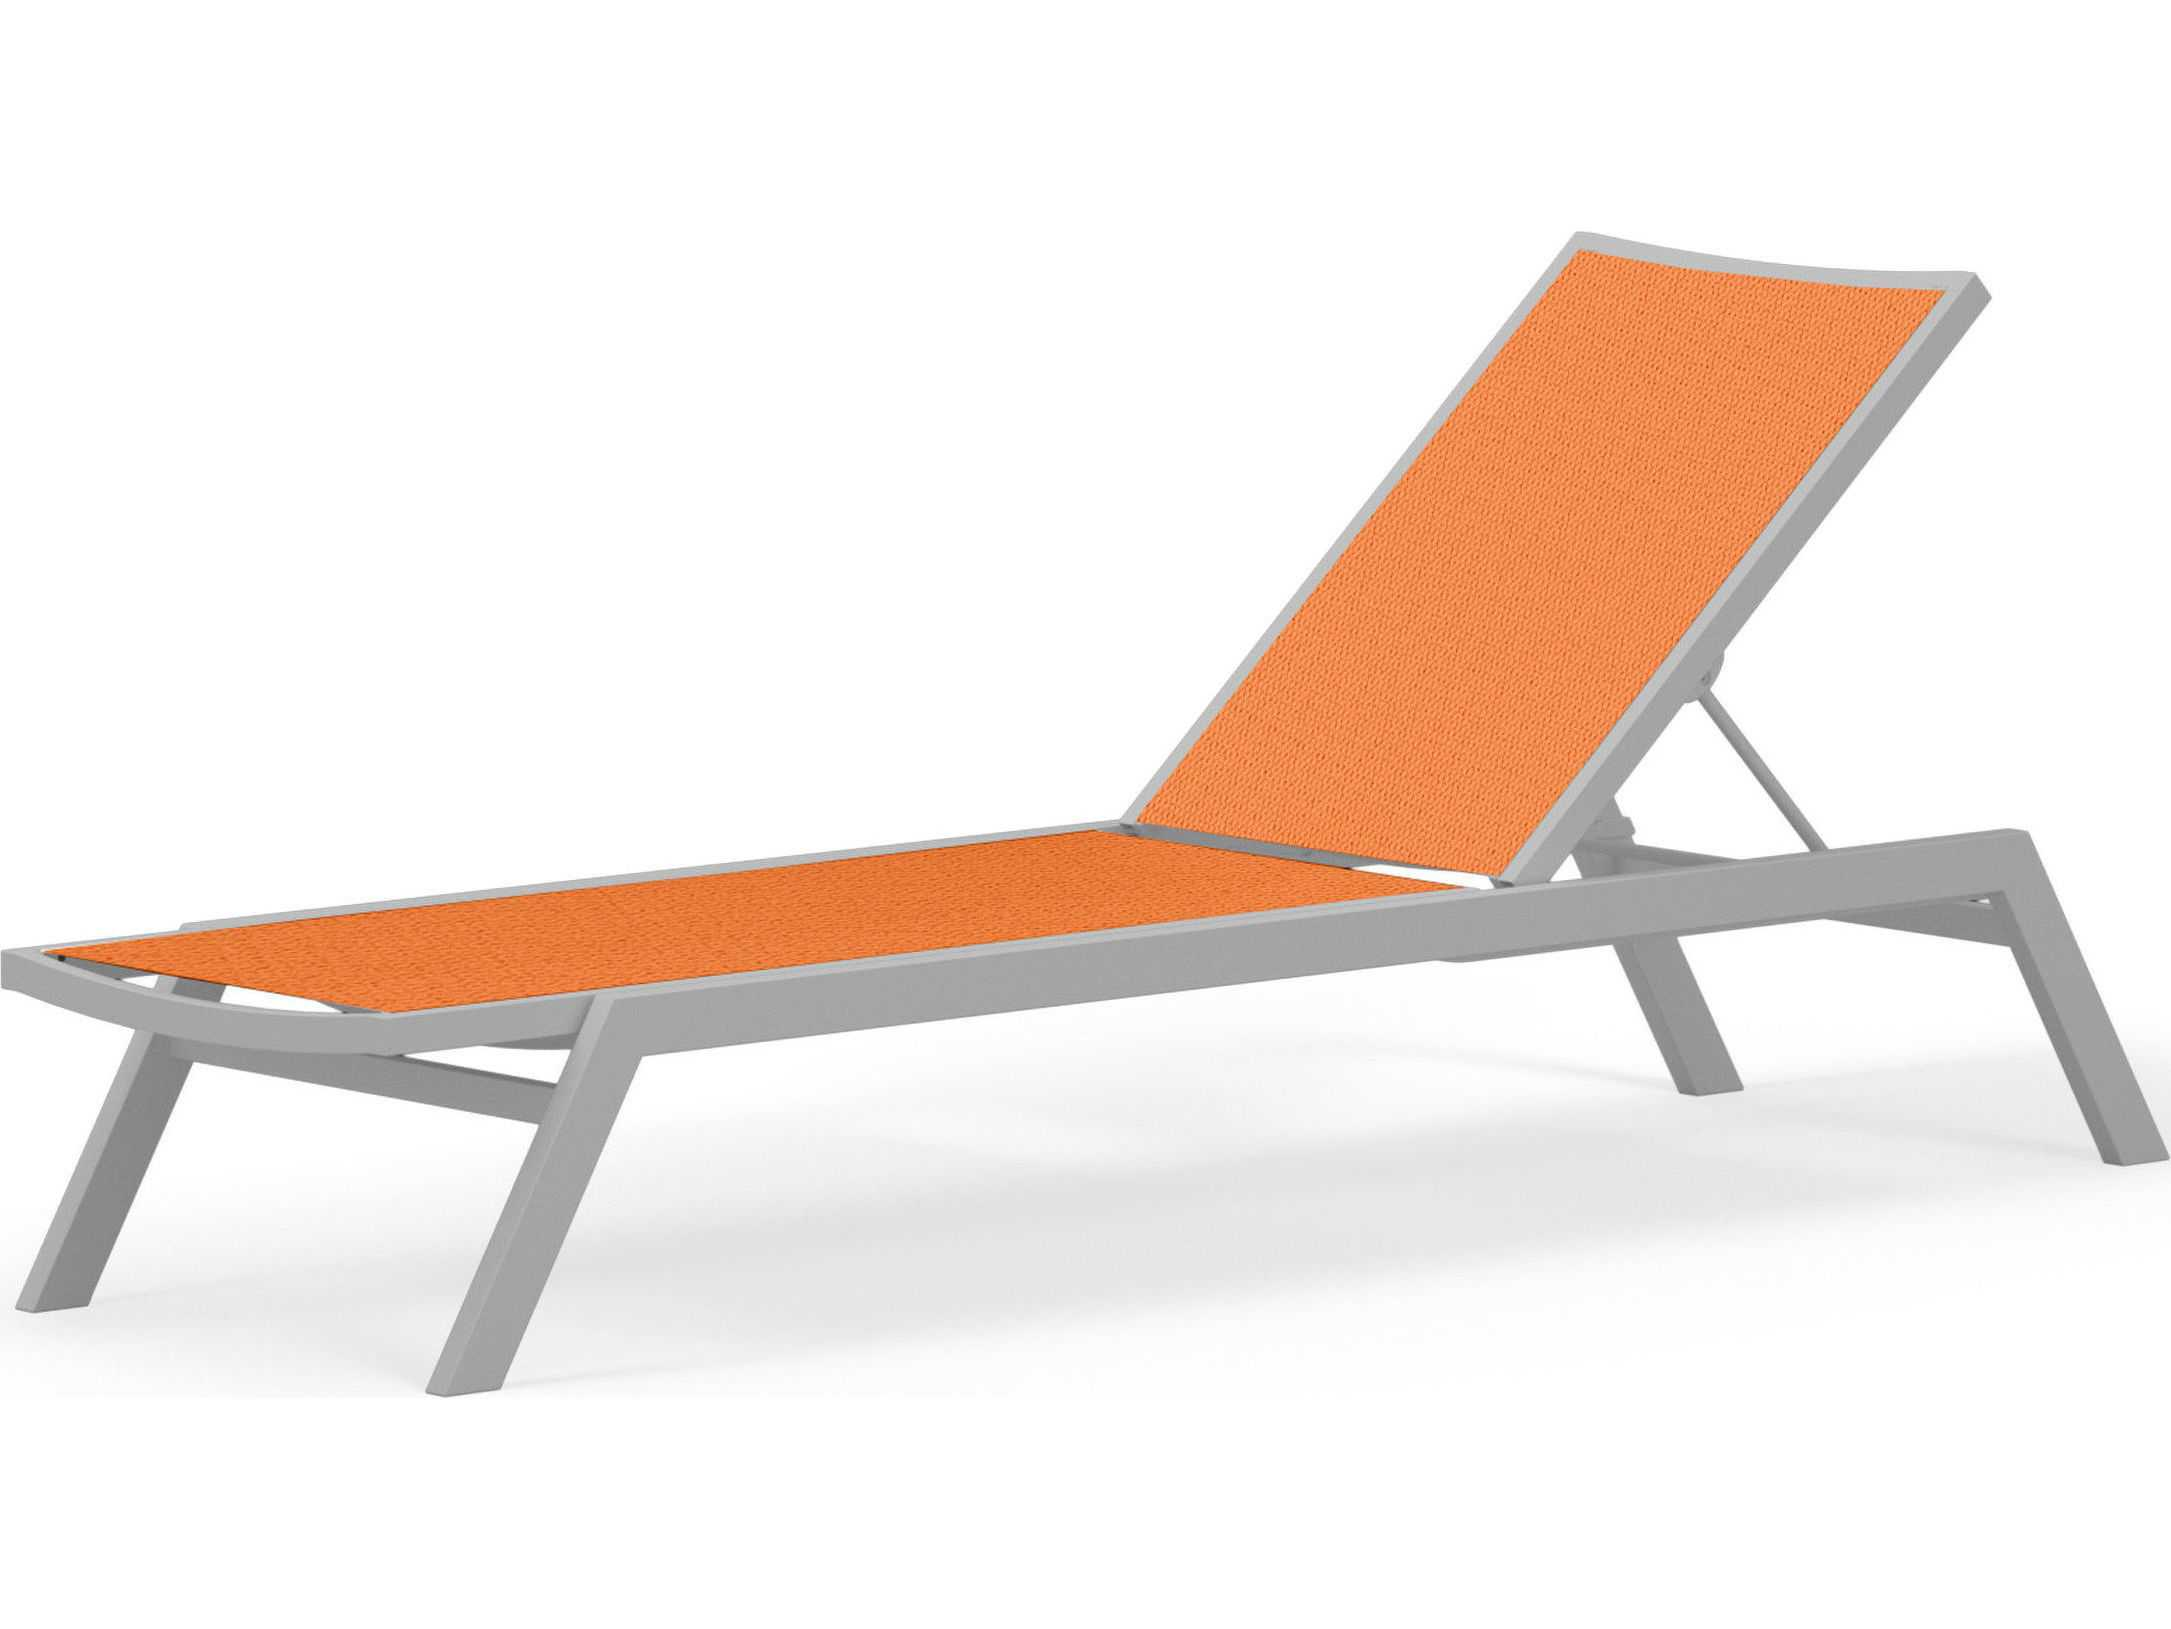 Polywood bayline sling aluminum chaise lounge ac190 for Chaise aluminium